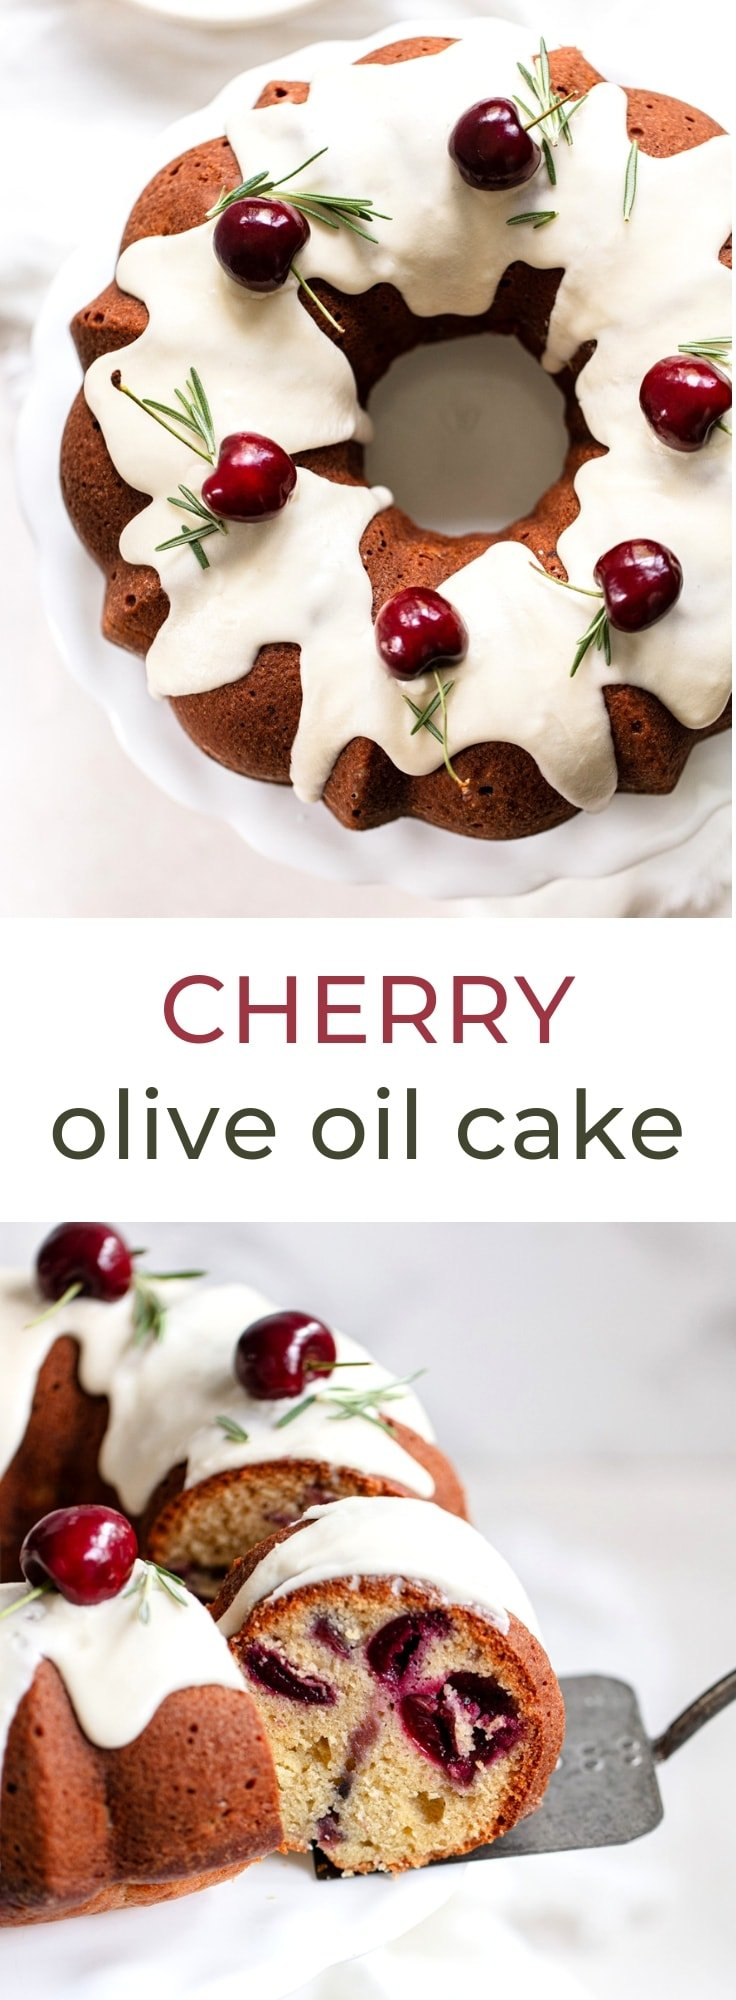 Cherry Olive Oil Cake - A simple recipe for light and moist Italian olive oil cake with fresh cherry filling.